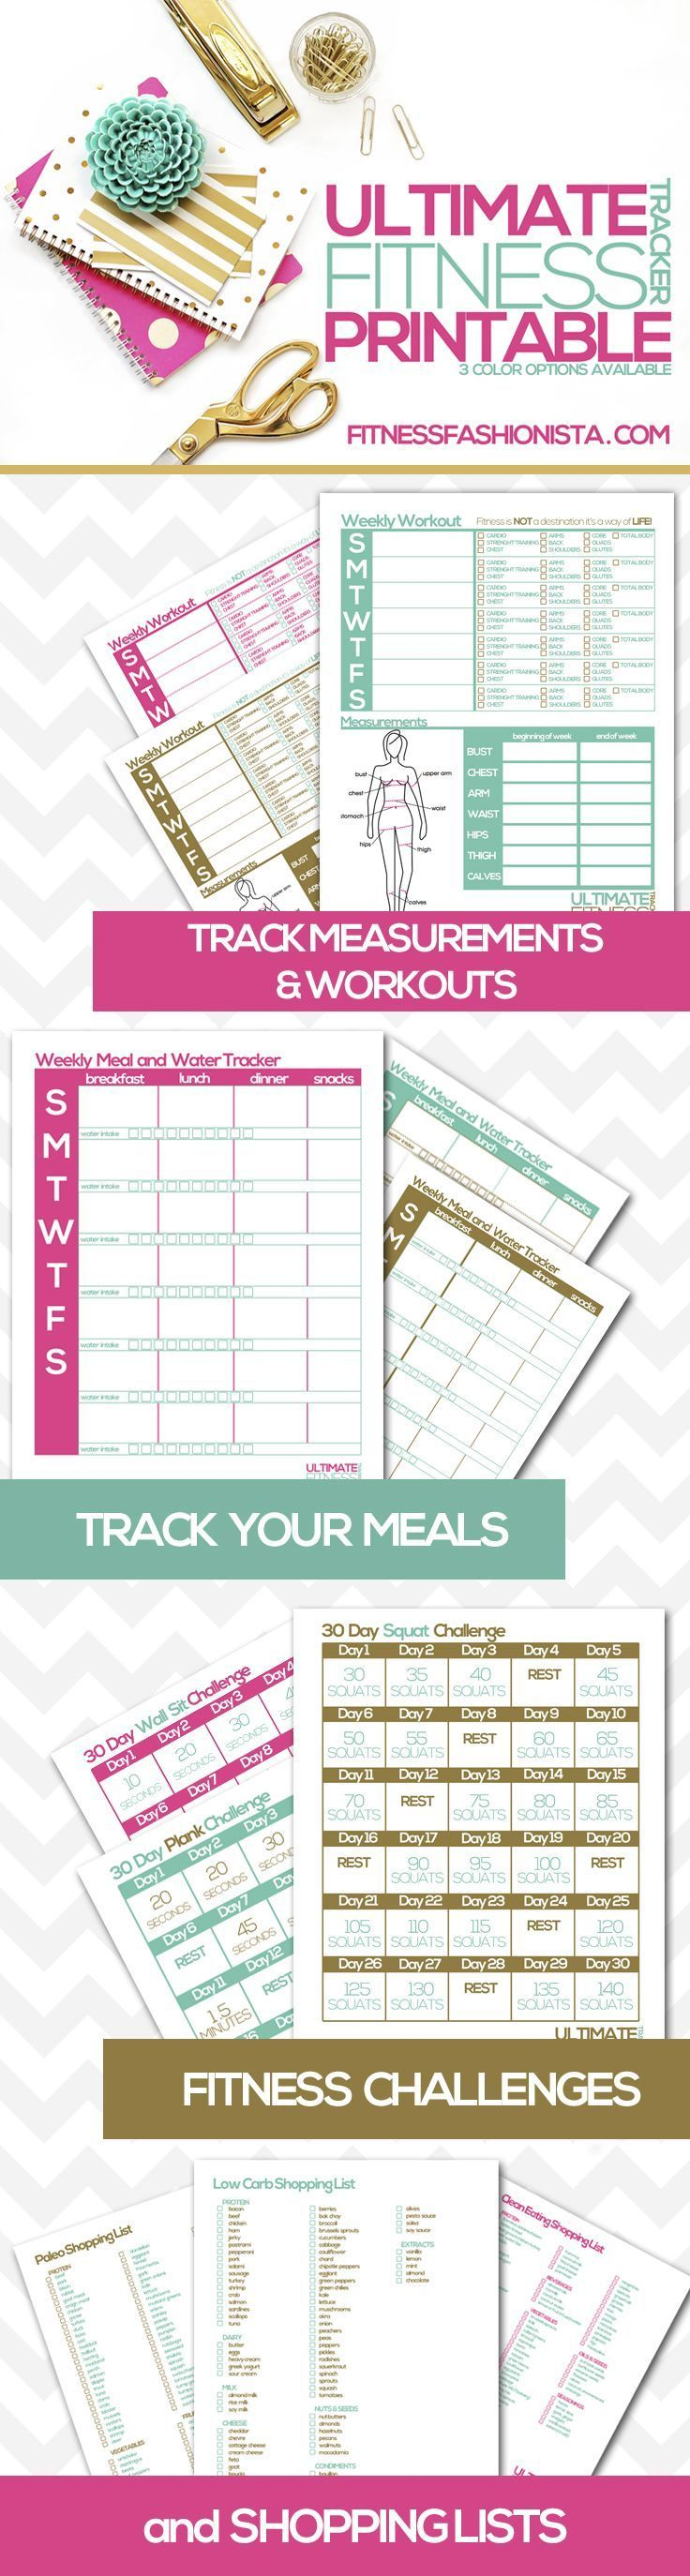 Time to get your weight loss and fitness plan together for the NEW YEAR.